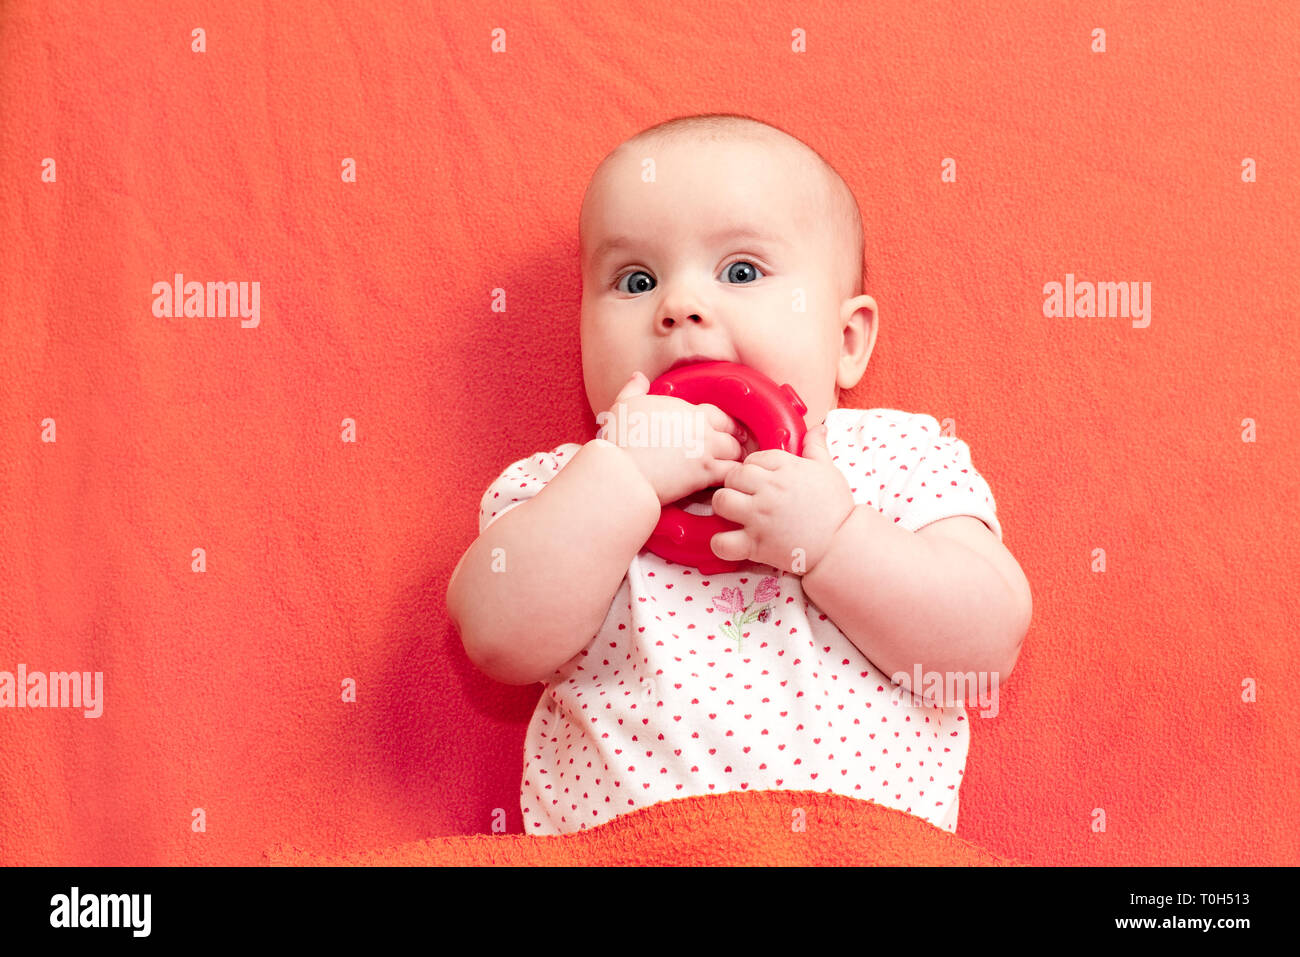 a2878c721 Head and shoulders portrait of little baby girl chewing teething ring laying  on living coral trendy color blanket